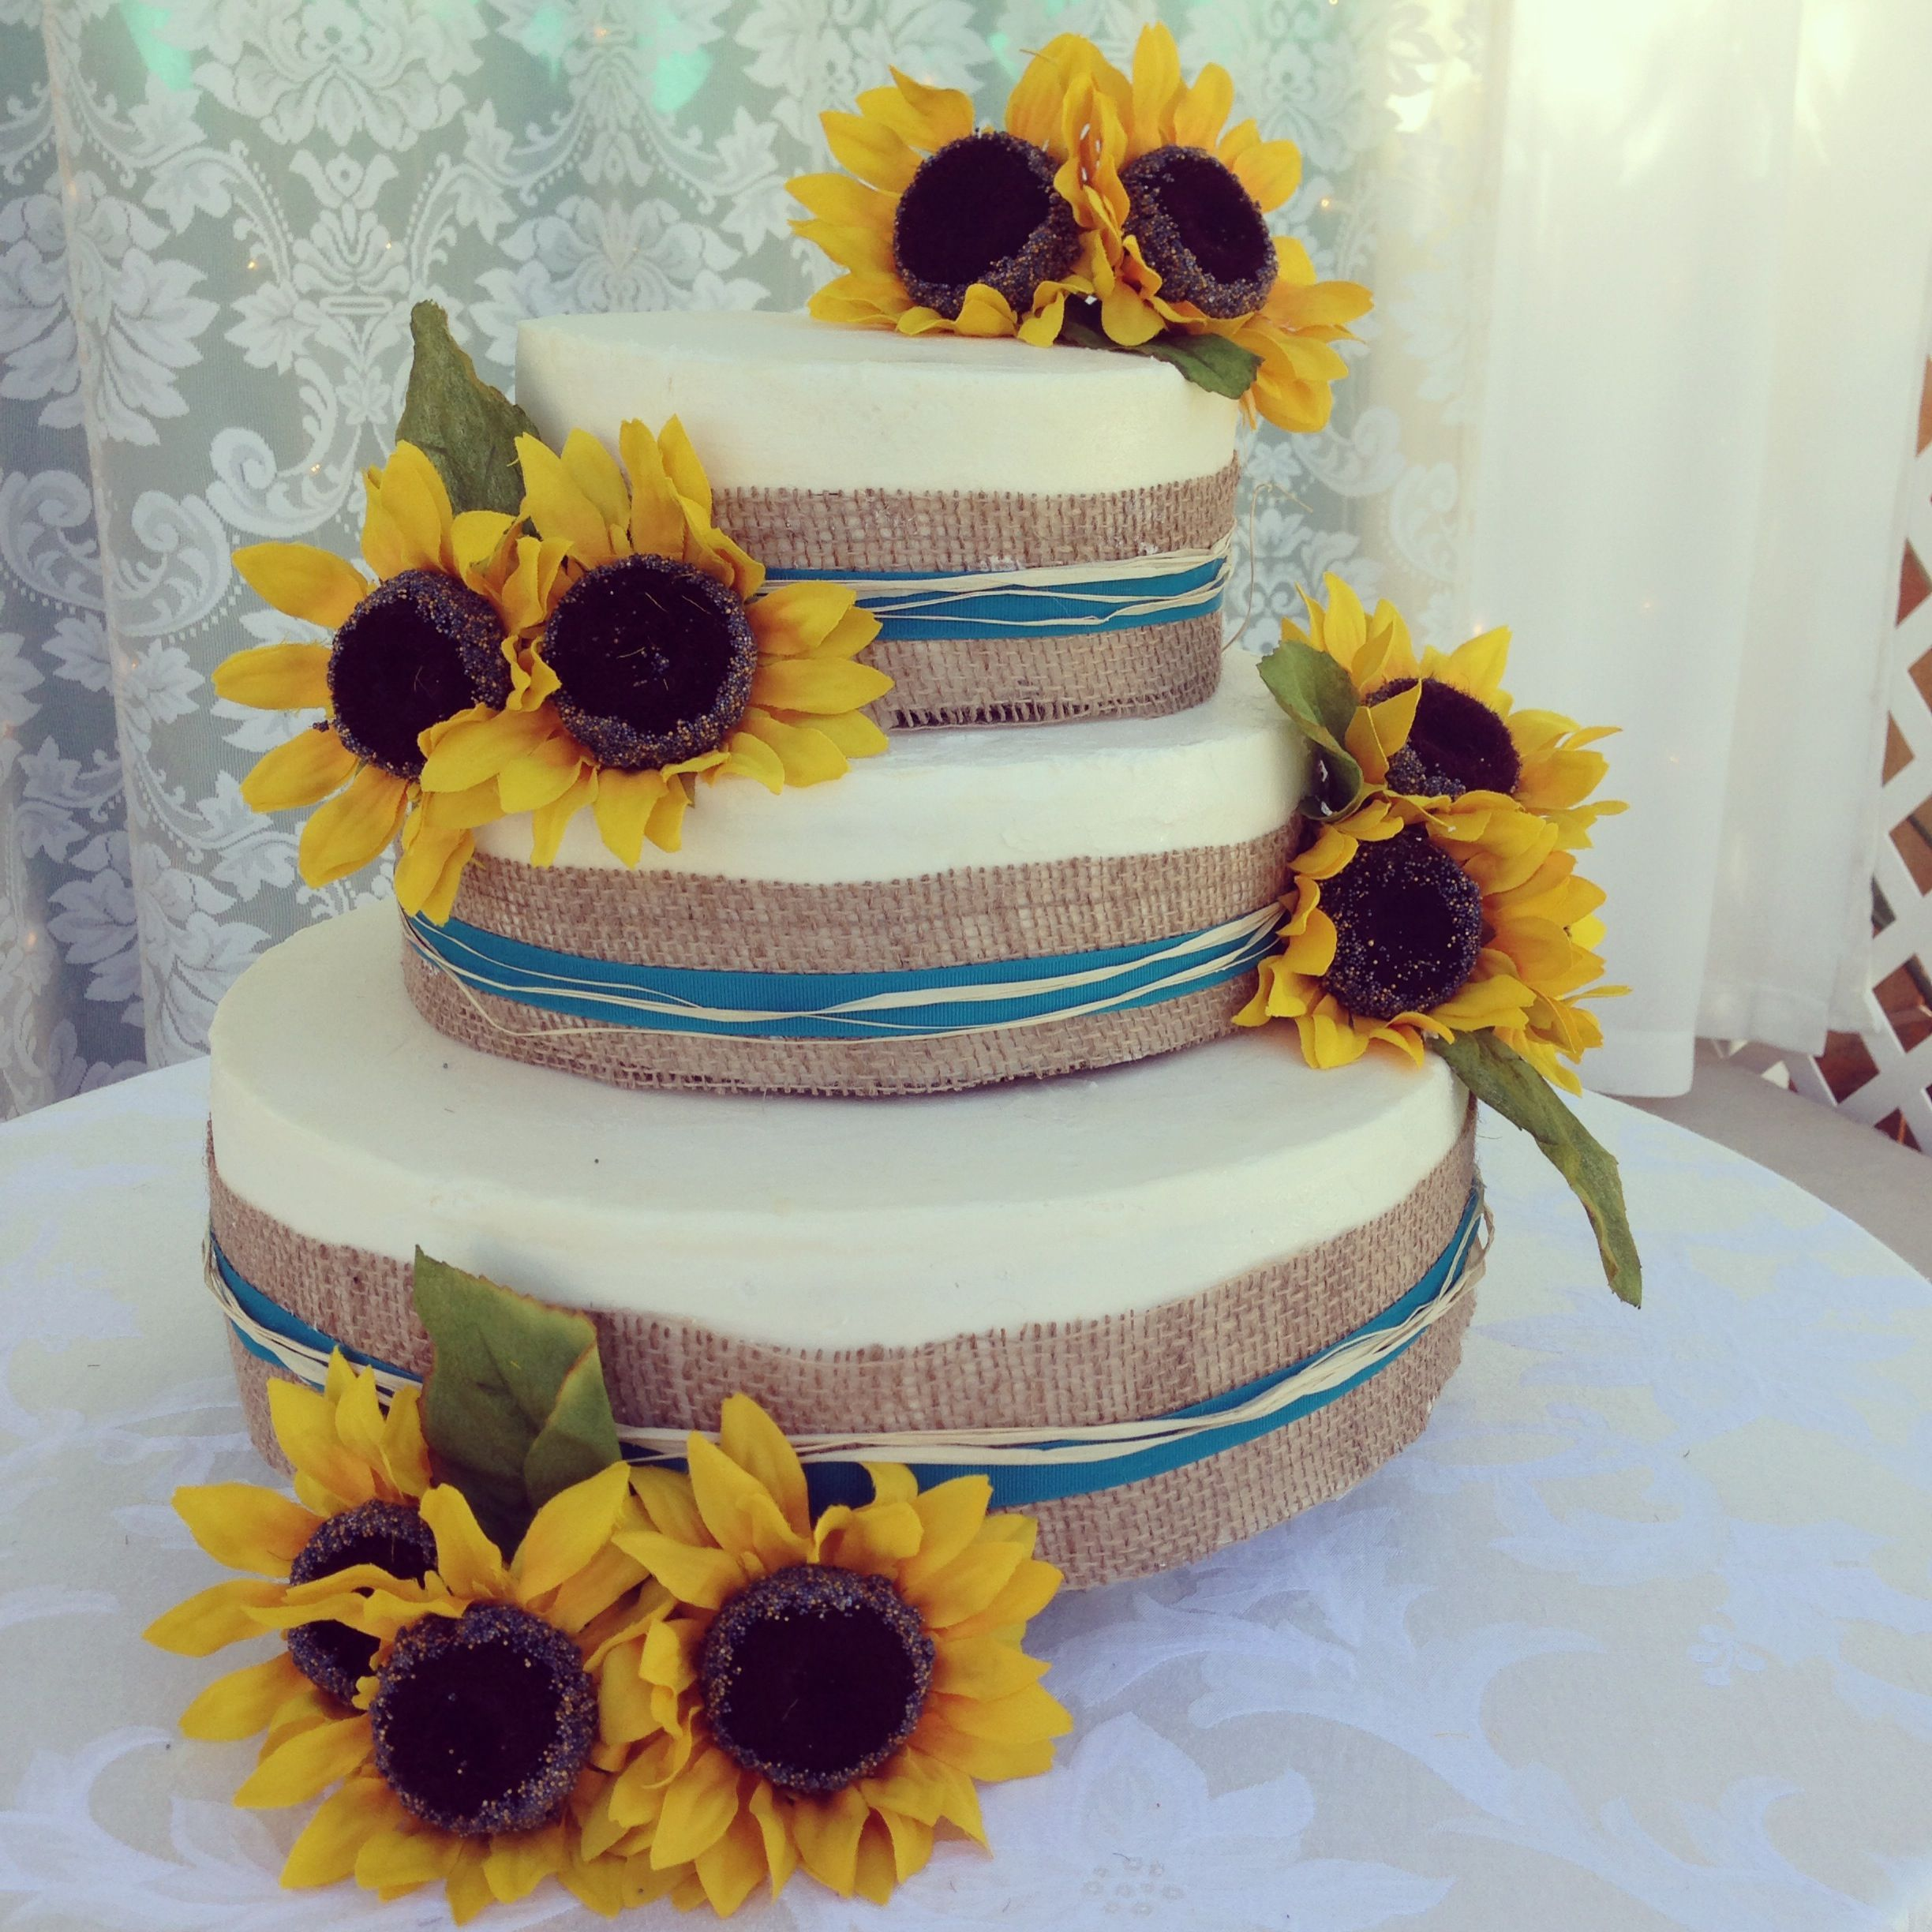 Simple sunflower 3 tier wedding cake wrapped in burlap